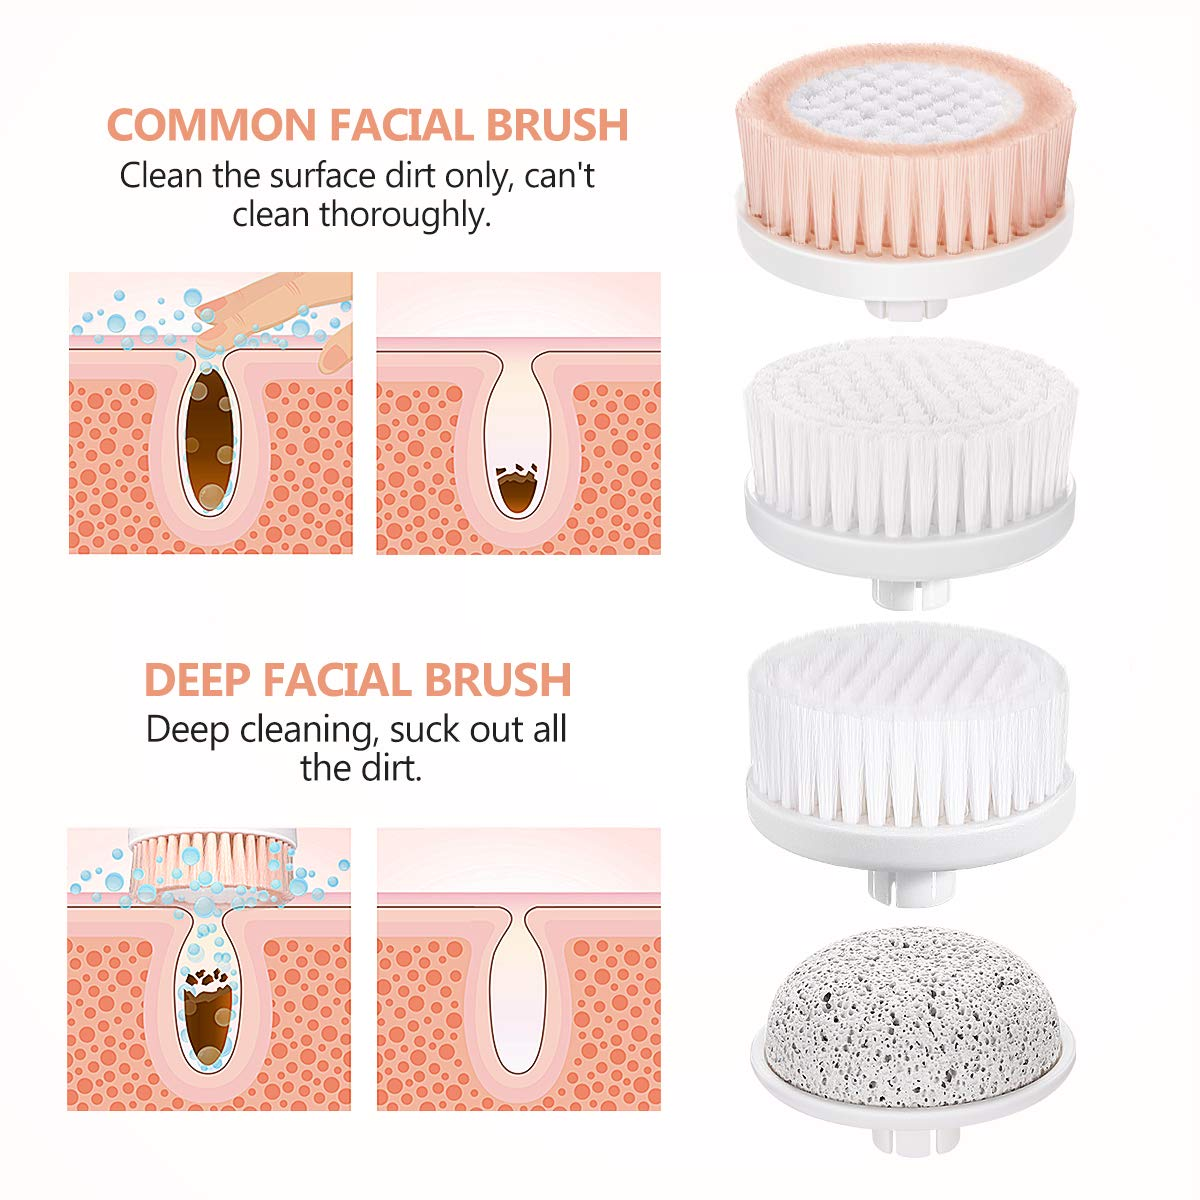 Facial Cleansing Brush Head Replacement 4 PCS for Etereauty 7 in 1 Waterproof Body Facial Brush